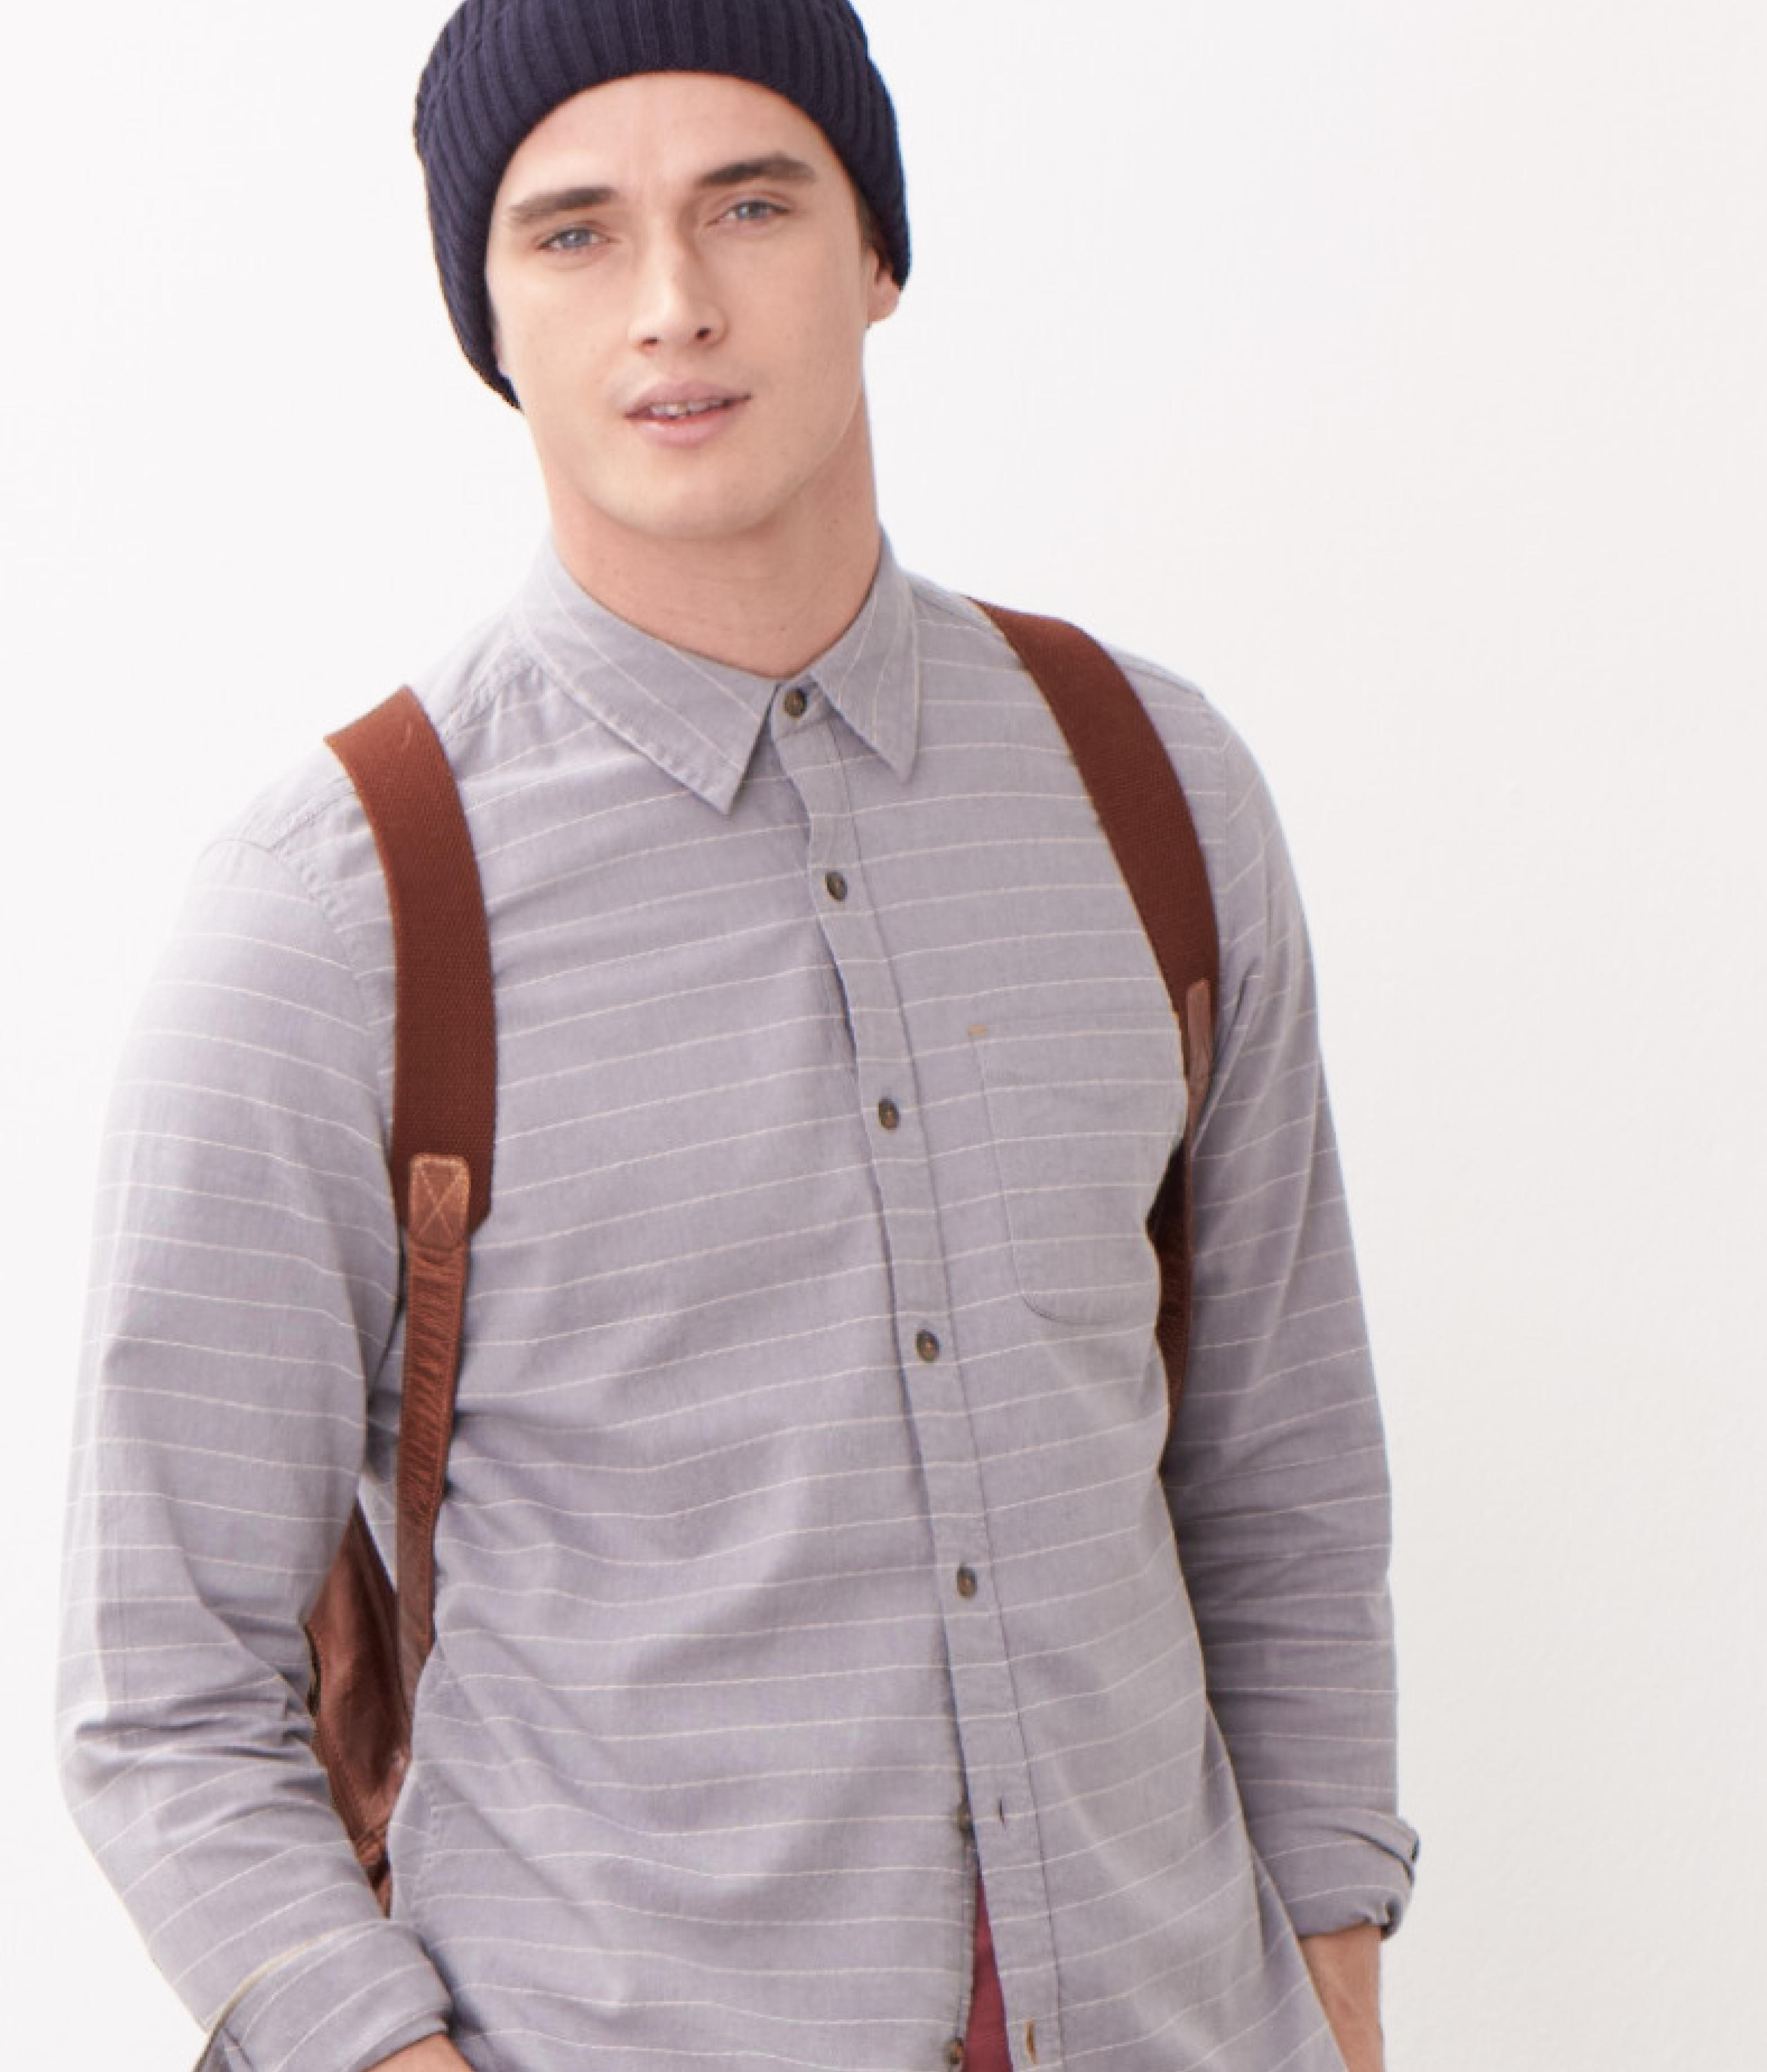 Close up of a male model wearing a grey shirt and a brown rucksack.